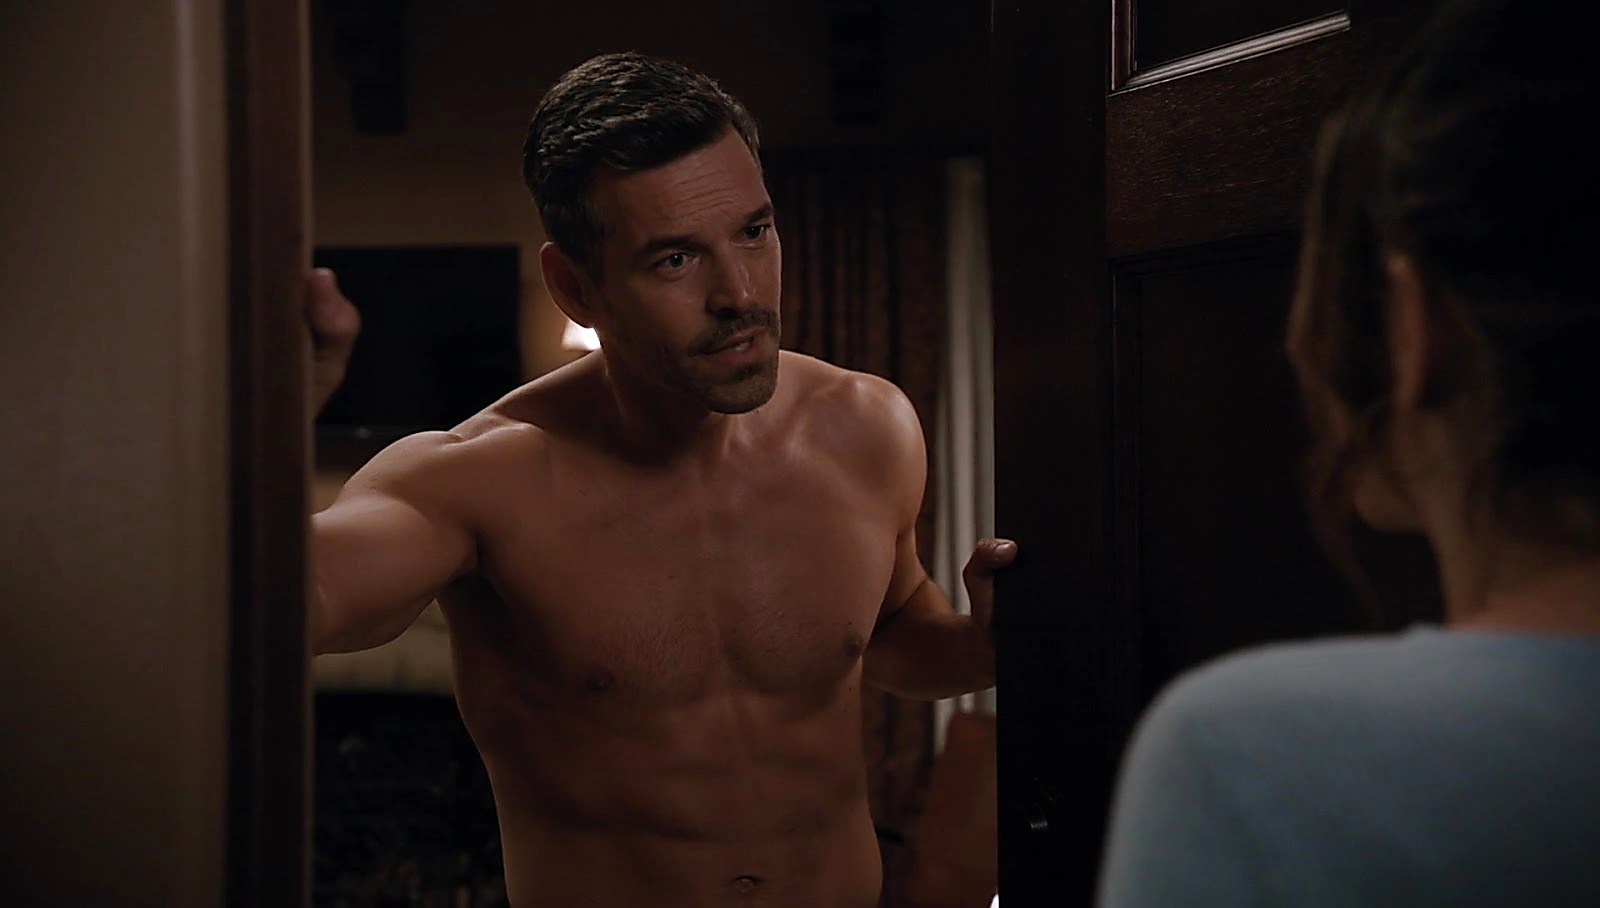 Eddie Cibrian Take Two S01E01 2018 06 22 0